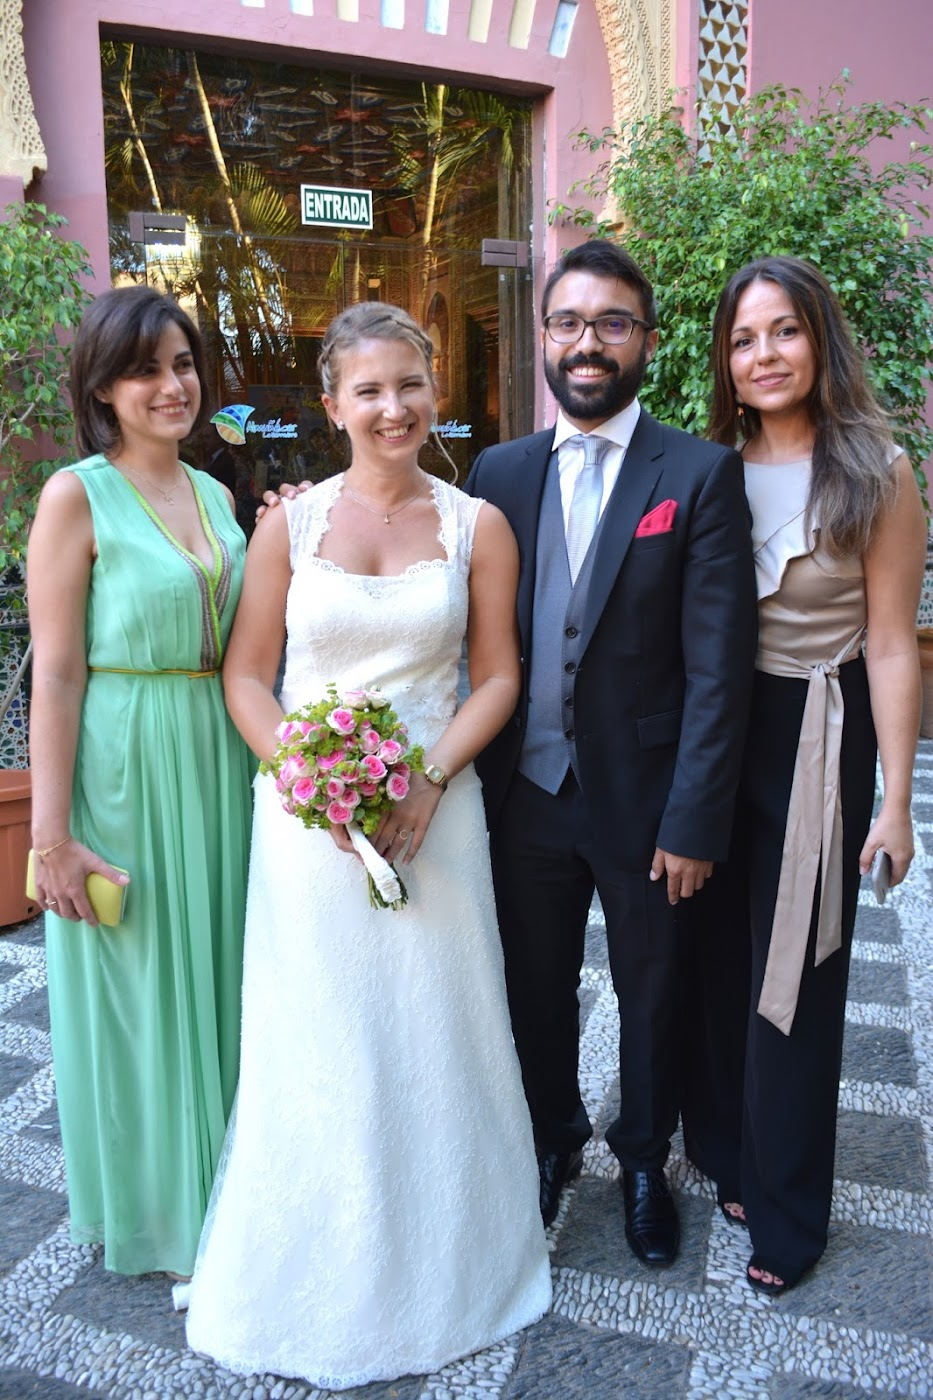 Bride and groom with two friends